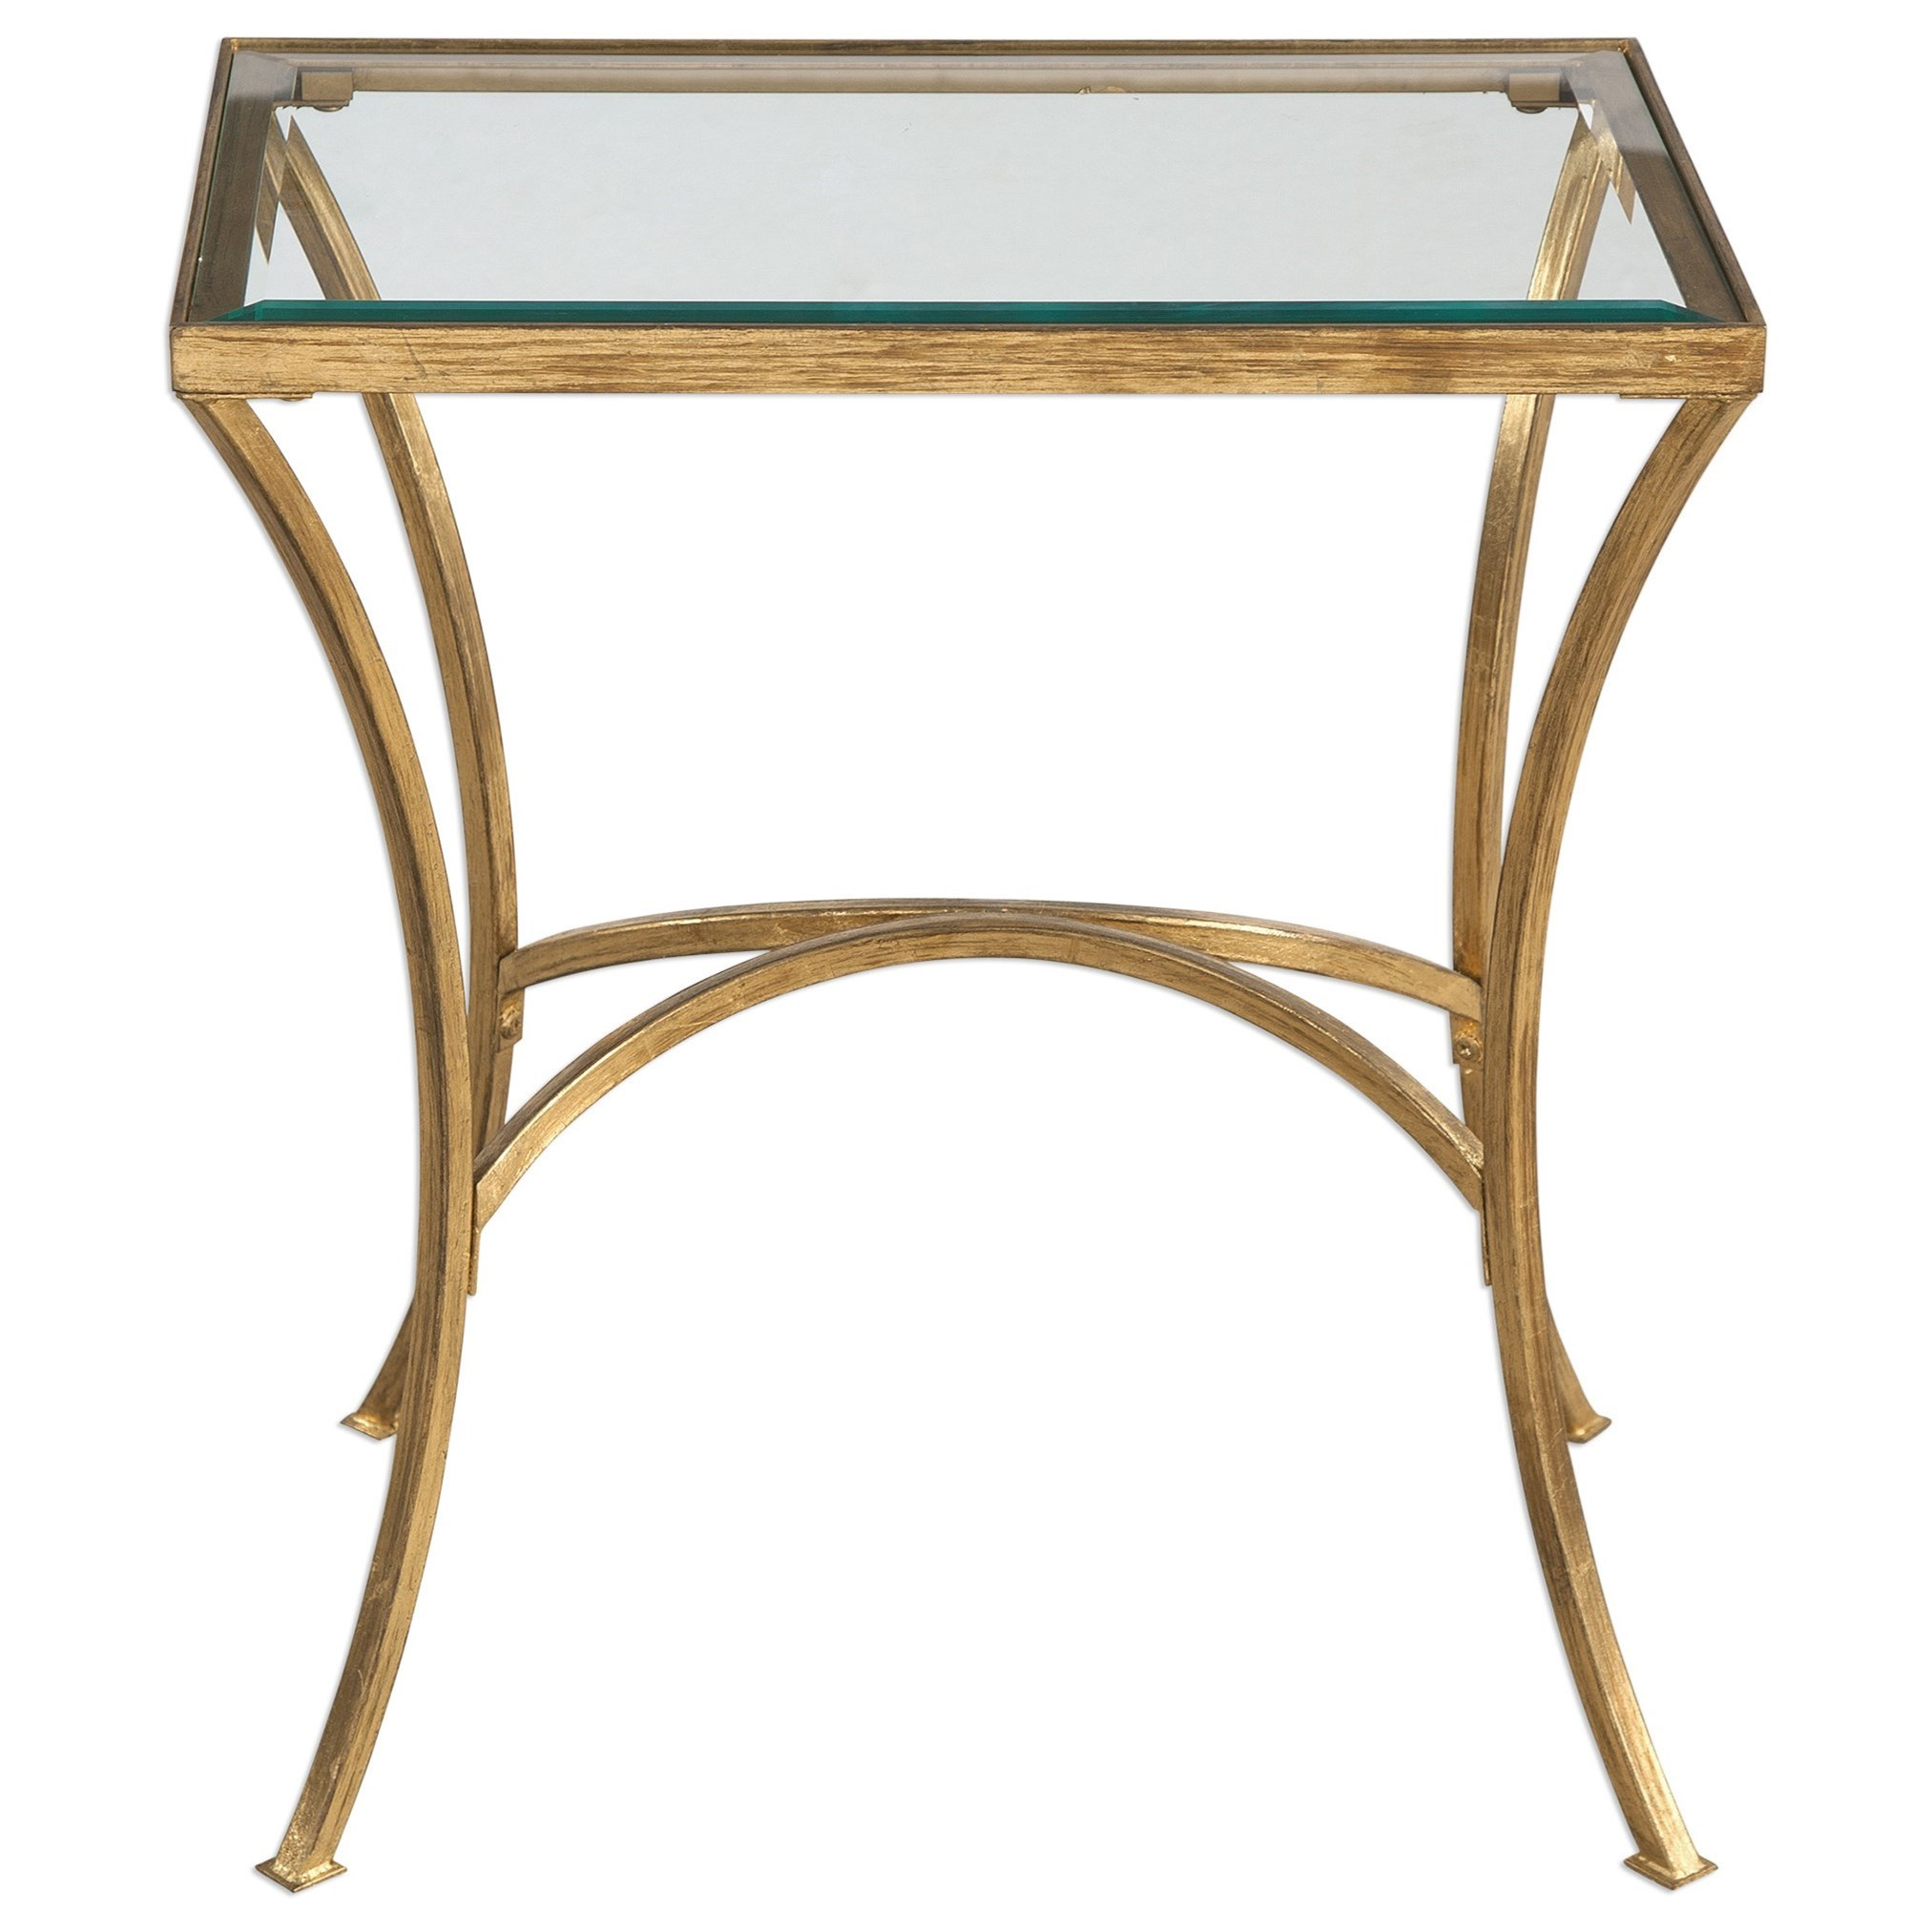 Accent Furniture - Occasional Tables Alayna Gold End Table by Uttermost at Upper Room Home Furnishings